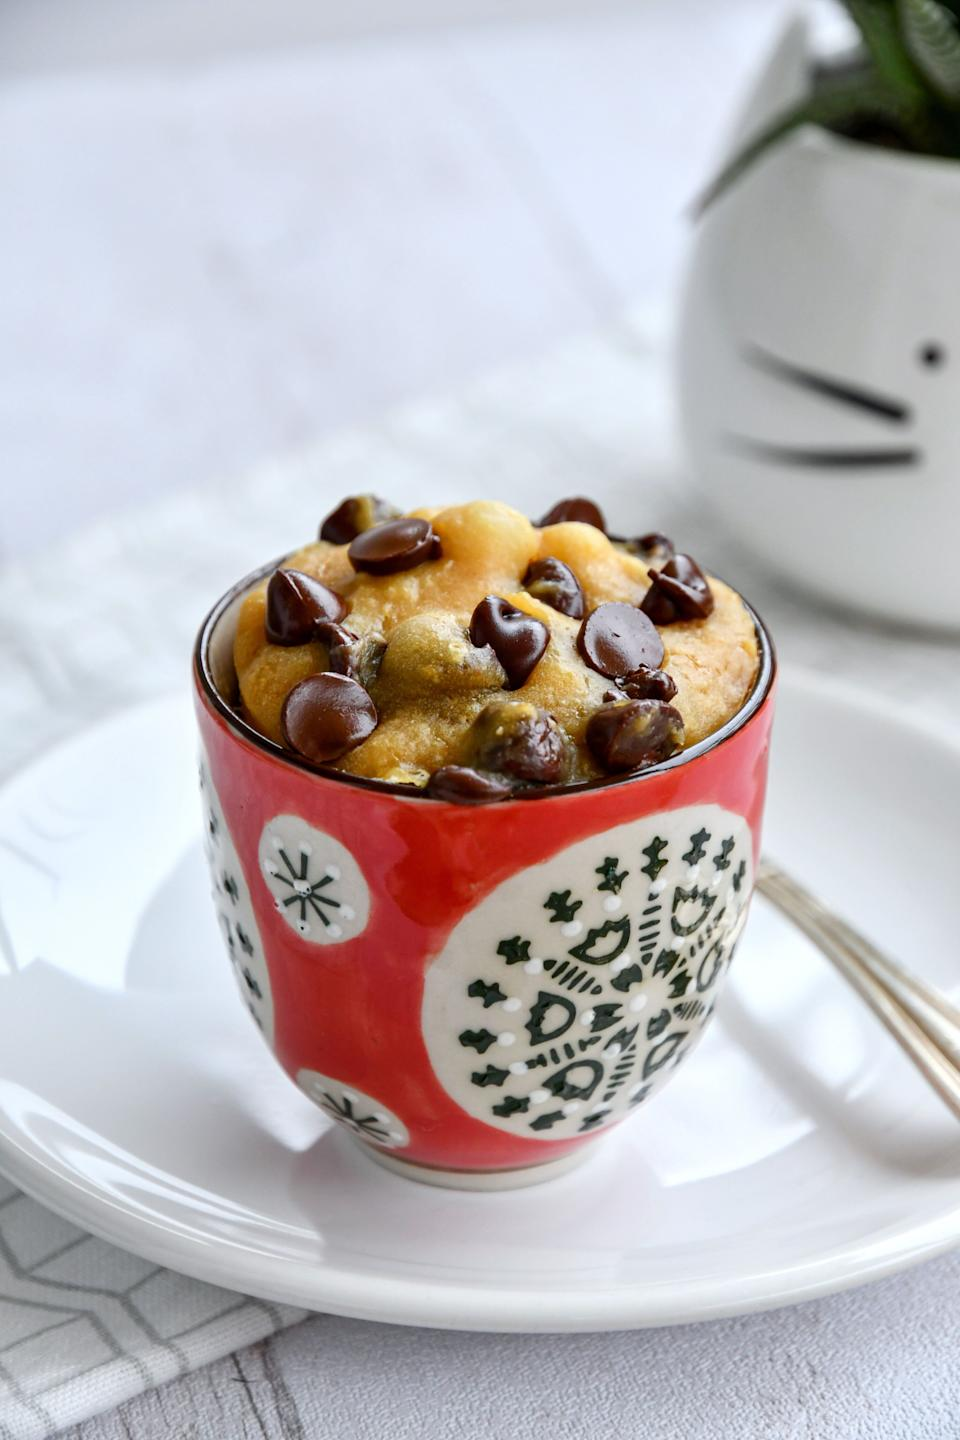 La recette du cookie mug par Julia Pairot. (Photo: © Julia Pairot)